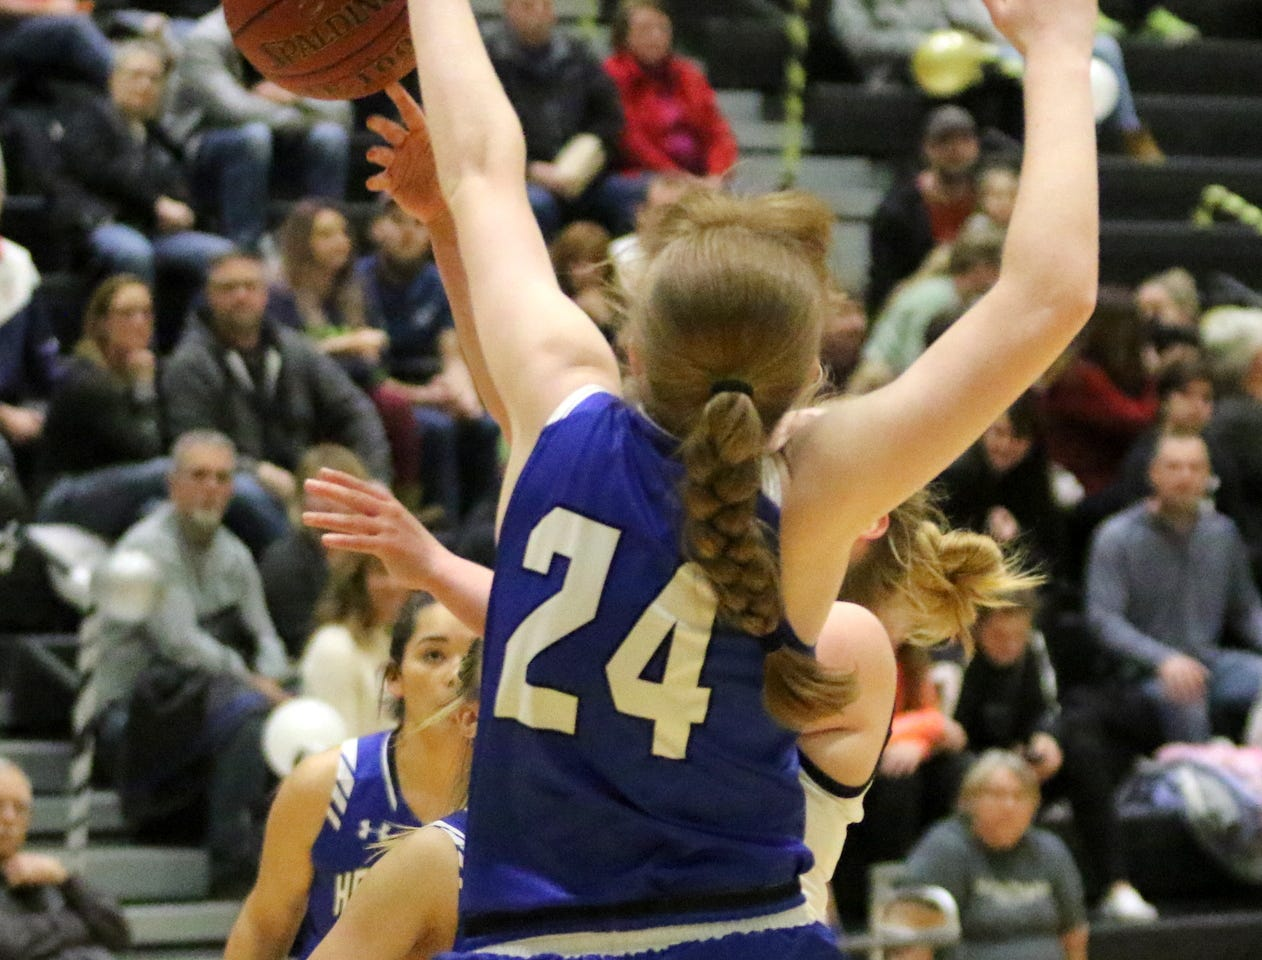 Action from the Horseheads' girls basketball team's 50-24 victory over Corning on Feb. 6, 2019 at Corning-Painted Post High School.